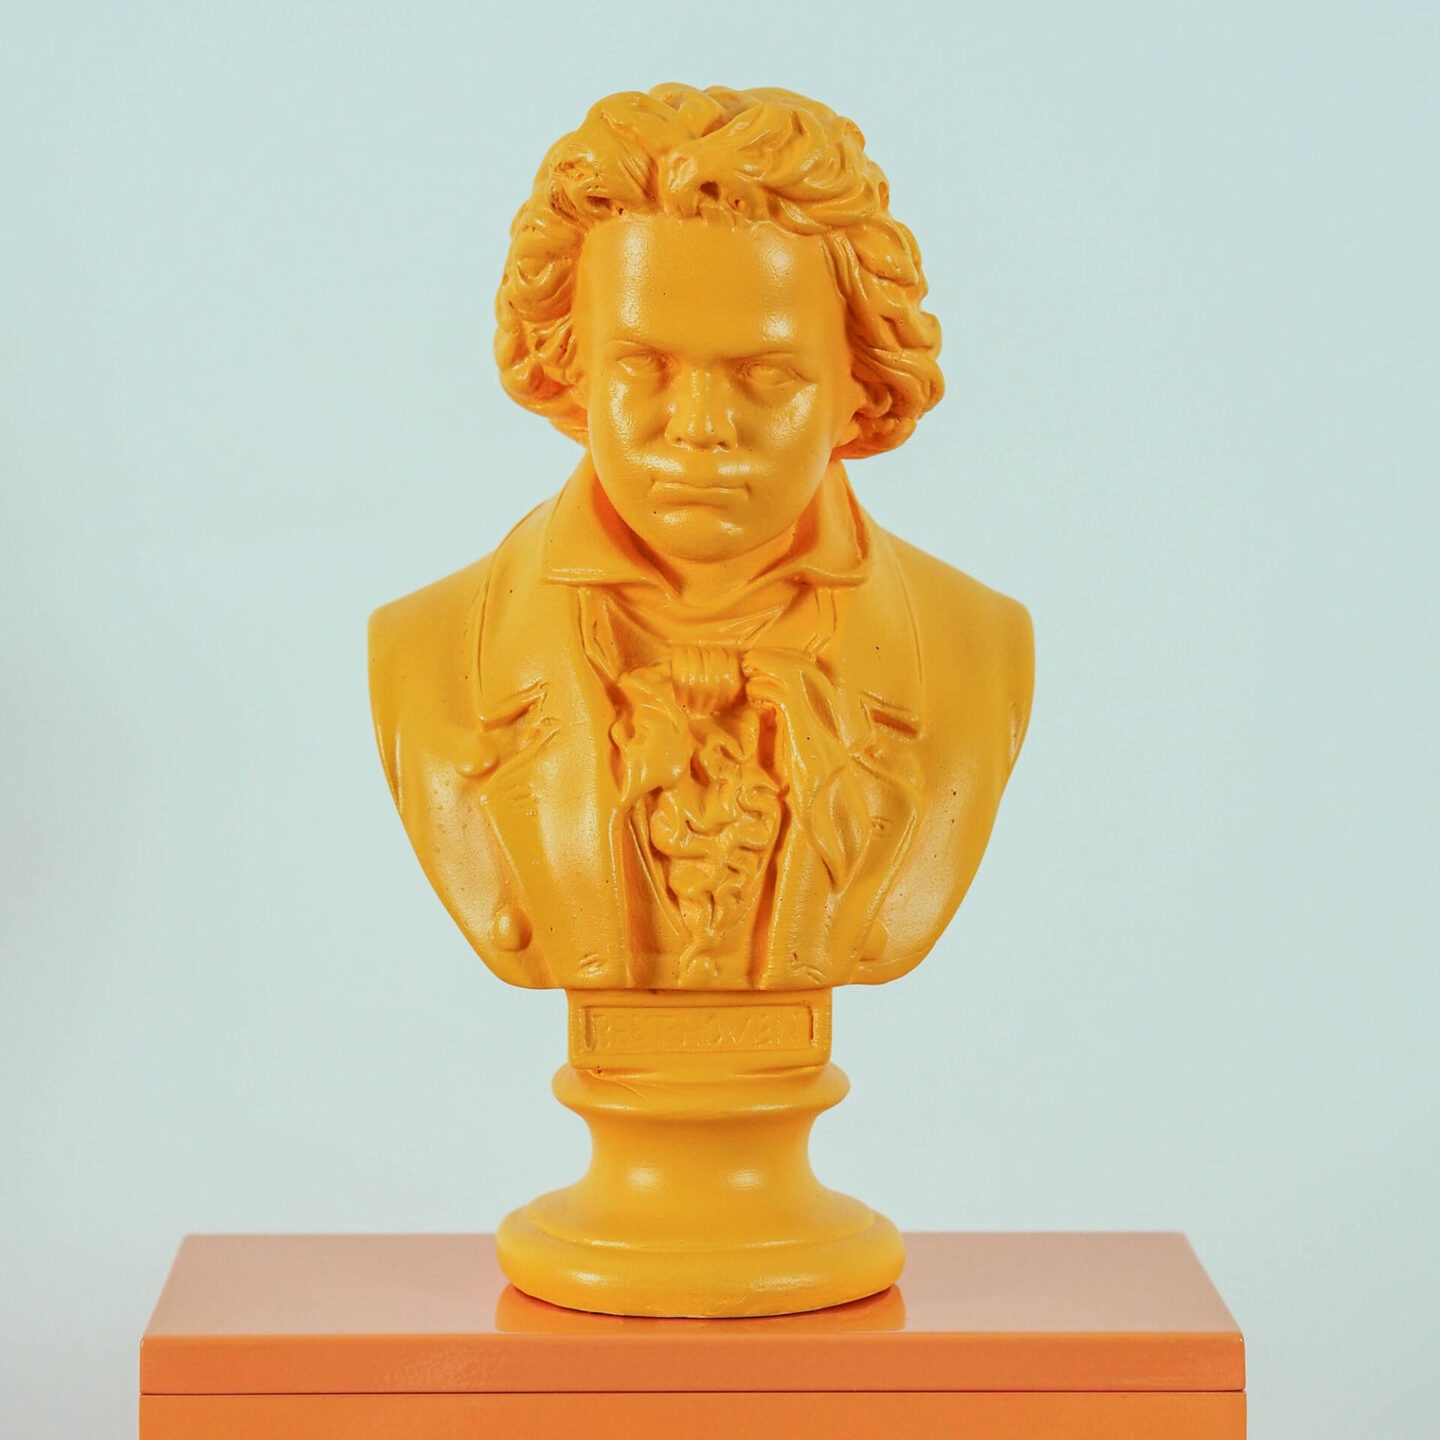 Not Lamb Home: Bold, kitsch upcycled homewares, vintage and decor | Yellow Ludwig Von Beethoven Bust